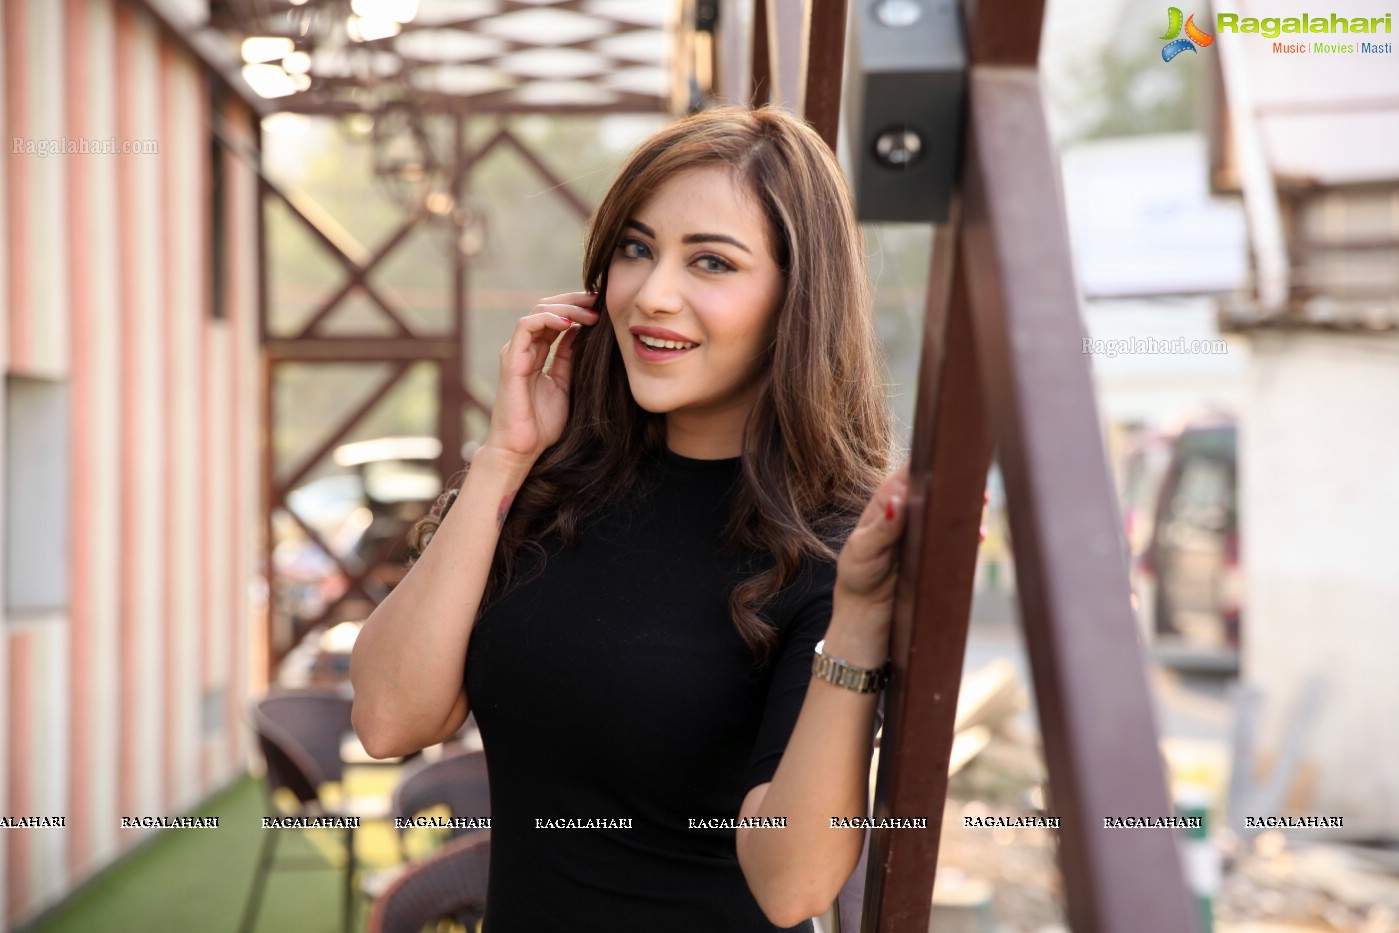 angela krislinzki (posters) image 1 | telugu actress photo gallery